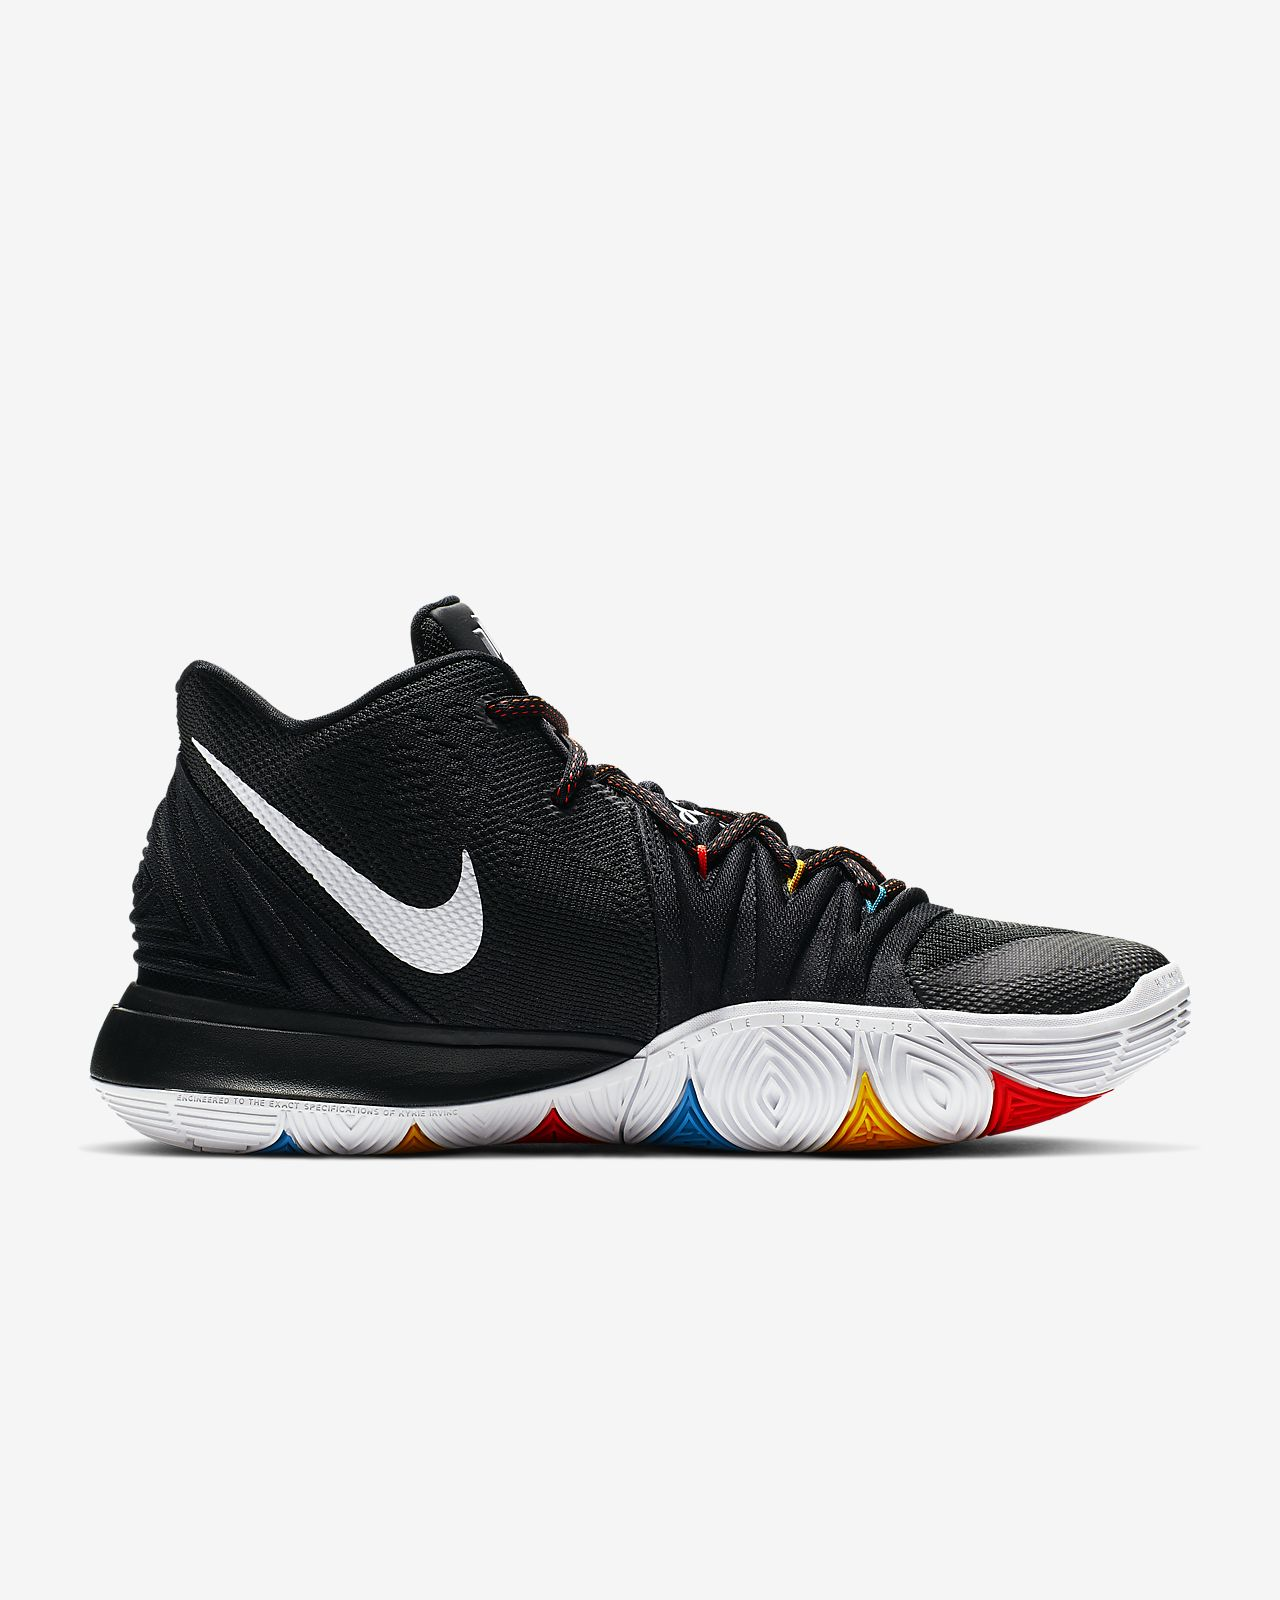 designer fashion f6dd6 947c5 ... Kyrie 5 x Friends Basketball Shoe